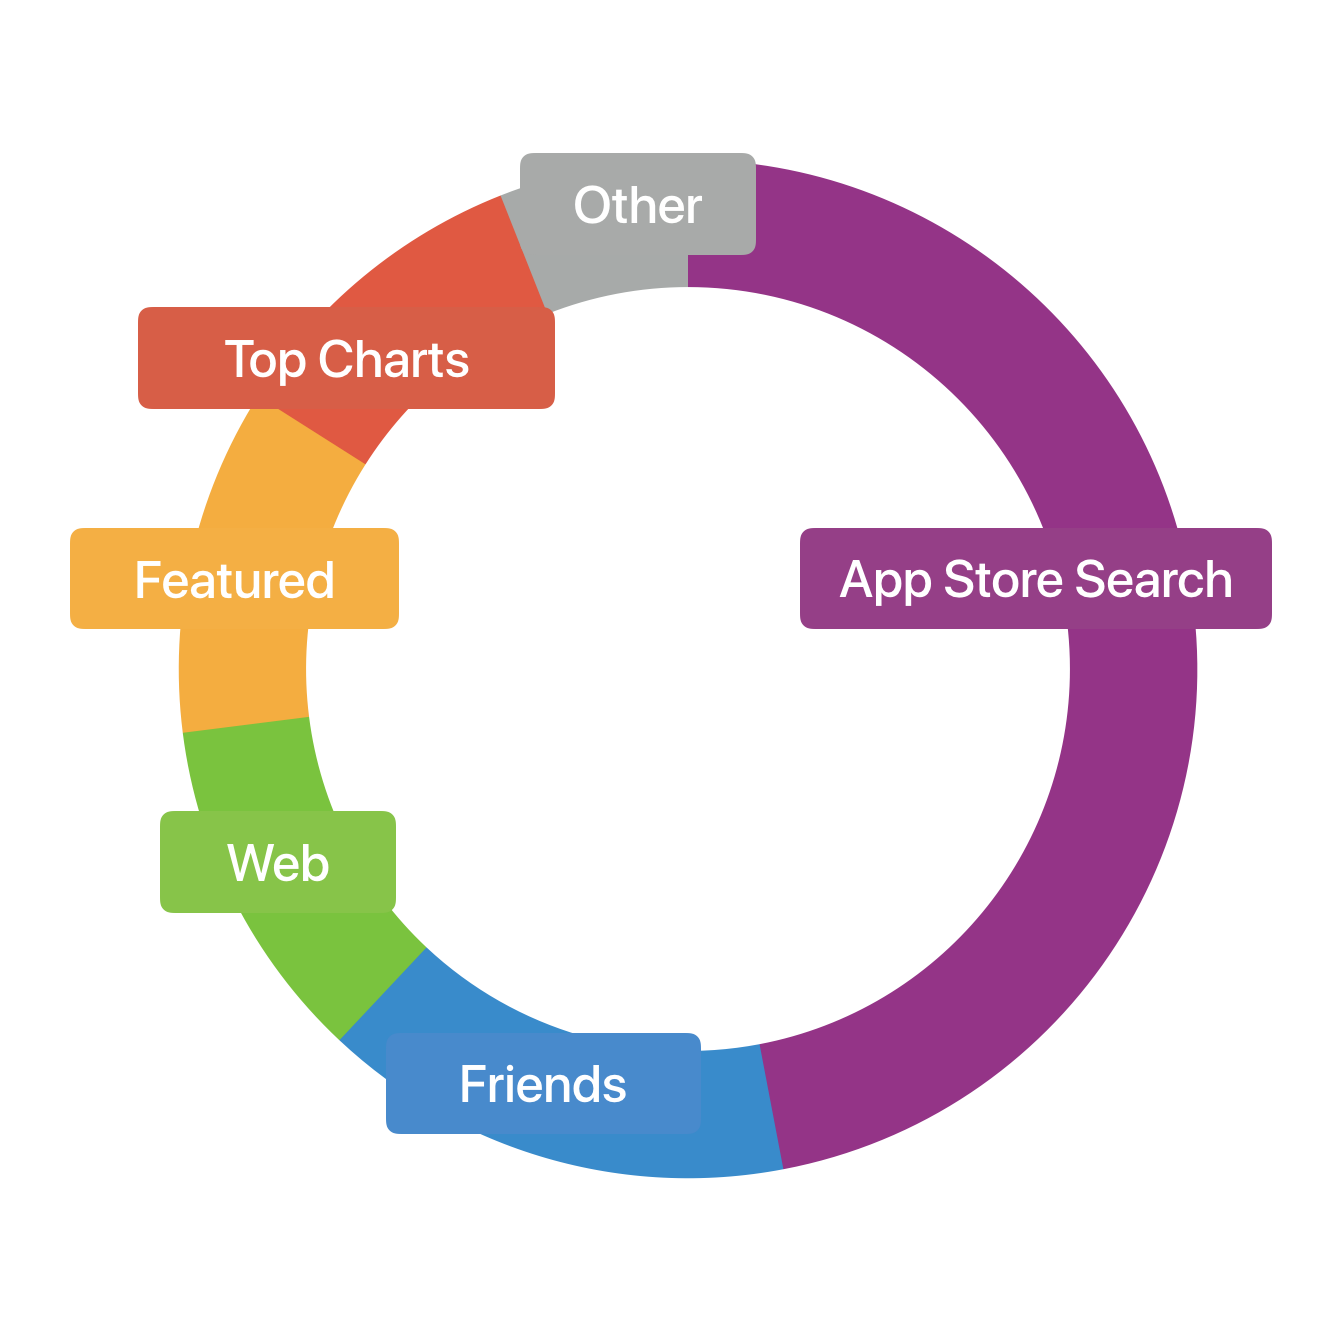 Identifying the problem. - Research indicates that nearly 68% of apps are discovered within the App Store itself. Our agency was delivering beautifully crafted apps without providing guidance on how client could drive these products in the app marketplace.